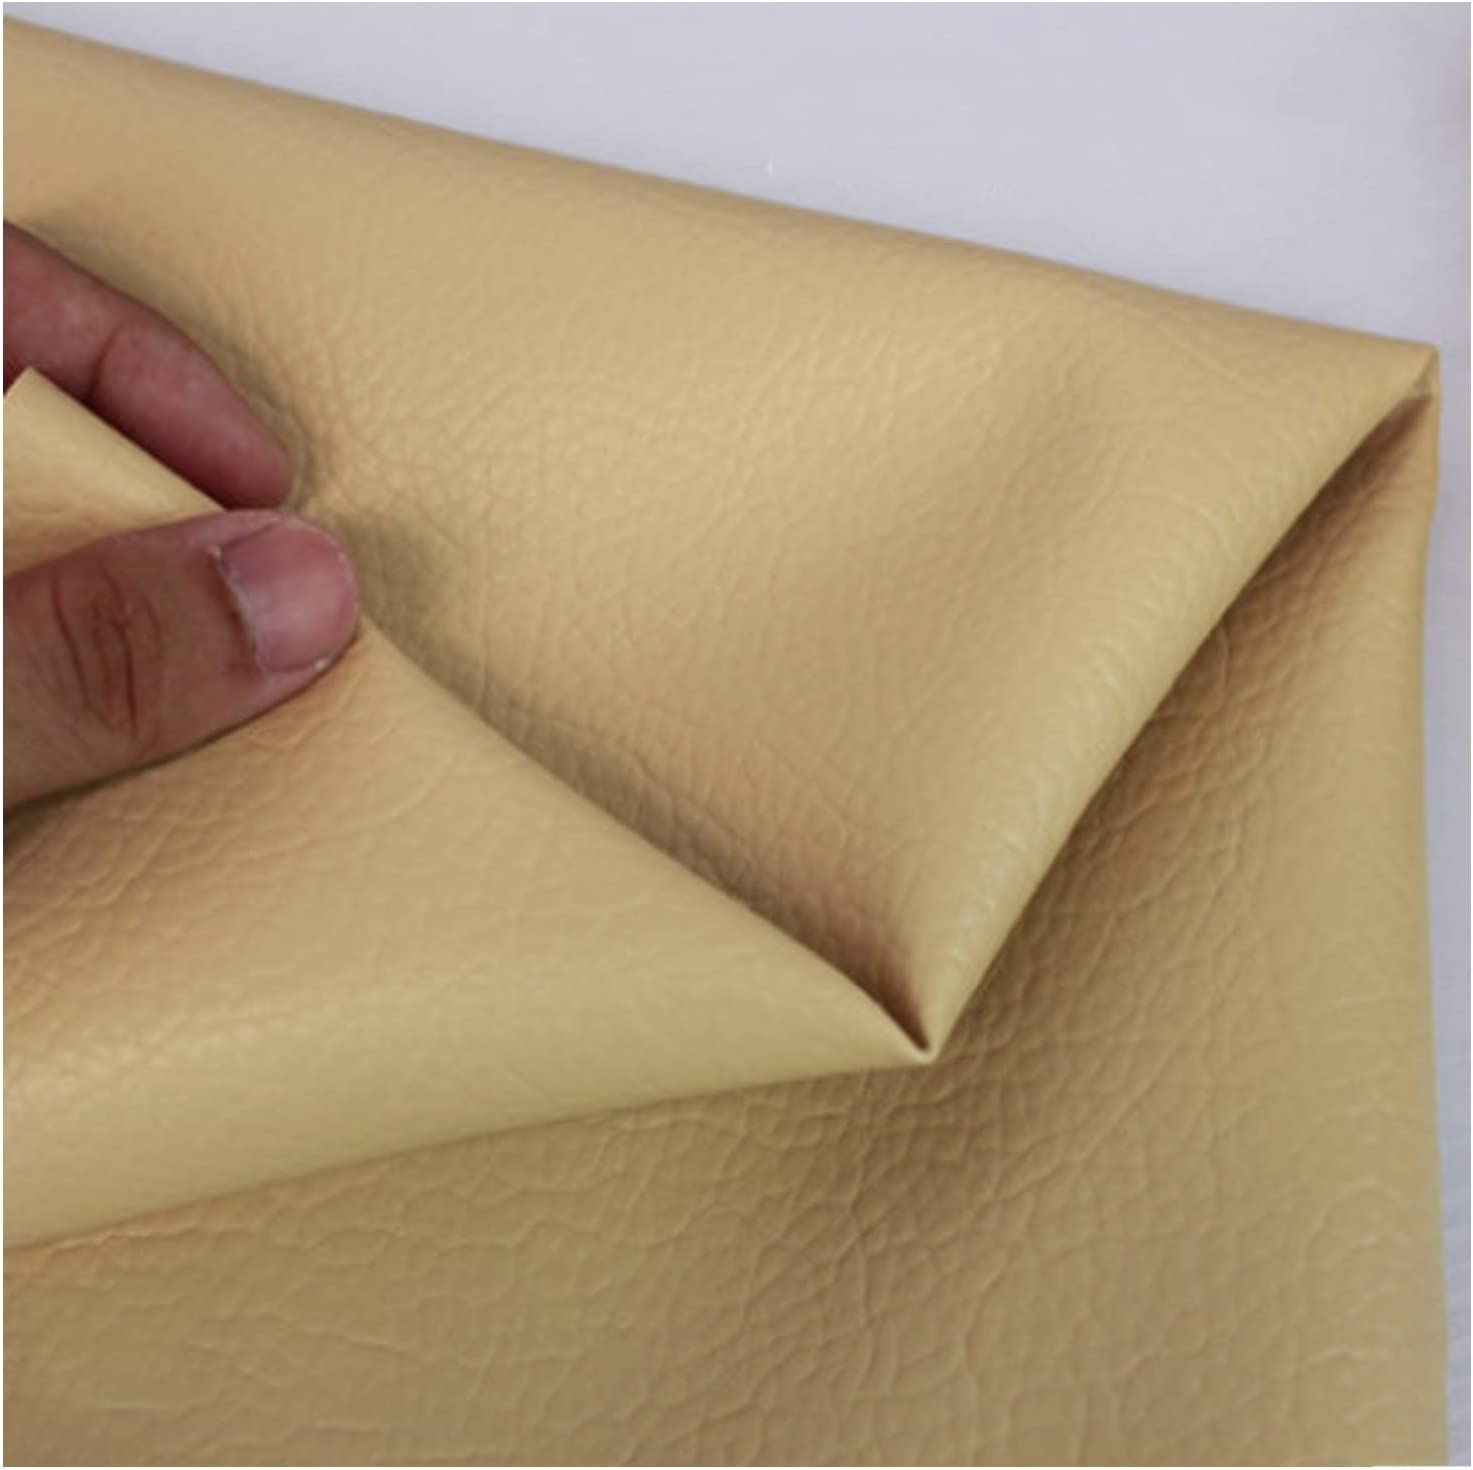 YANGUANG Leatherette Faux Fixed price Cheap super special price for sale Leather Fabric Texture Litchi Le Grain